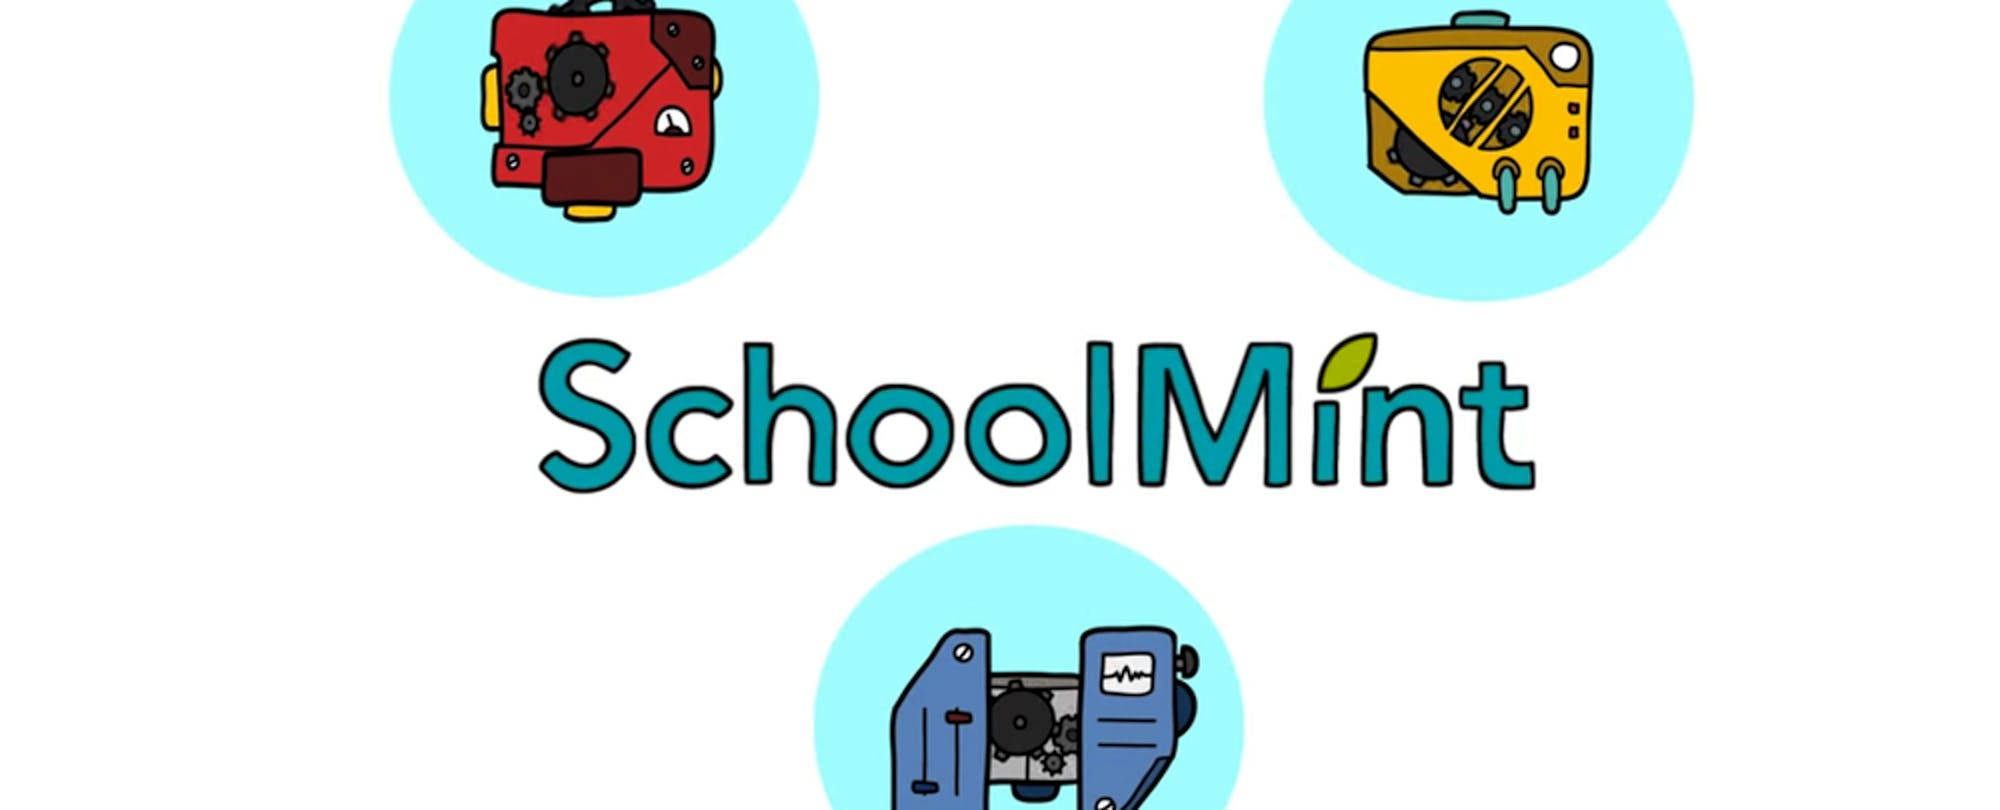 SchoolMint, a Mobile-Native School Choice Platform, Mints a $5.6M Series A Round